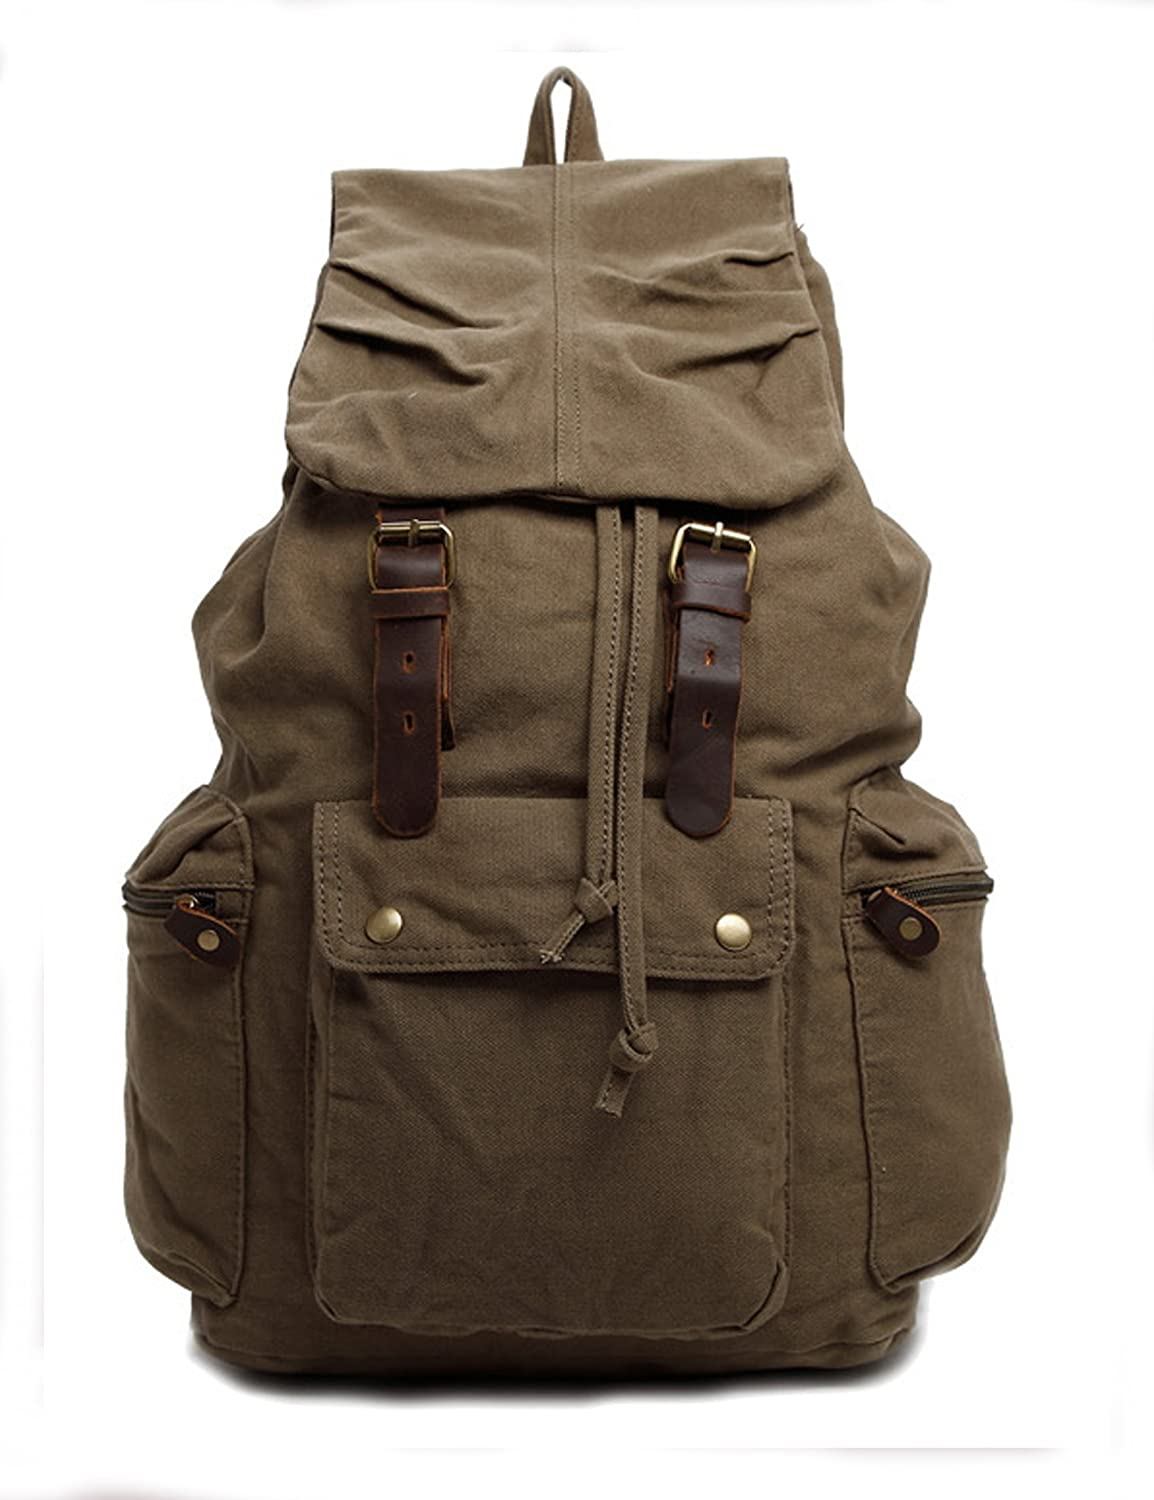 Hynes Eagle Retro Designer Canvas Backpack Large Rucksack 25 Liter Army Green II HY0506